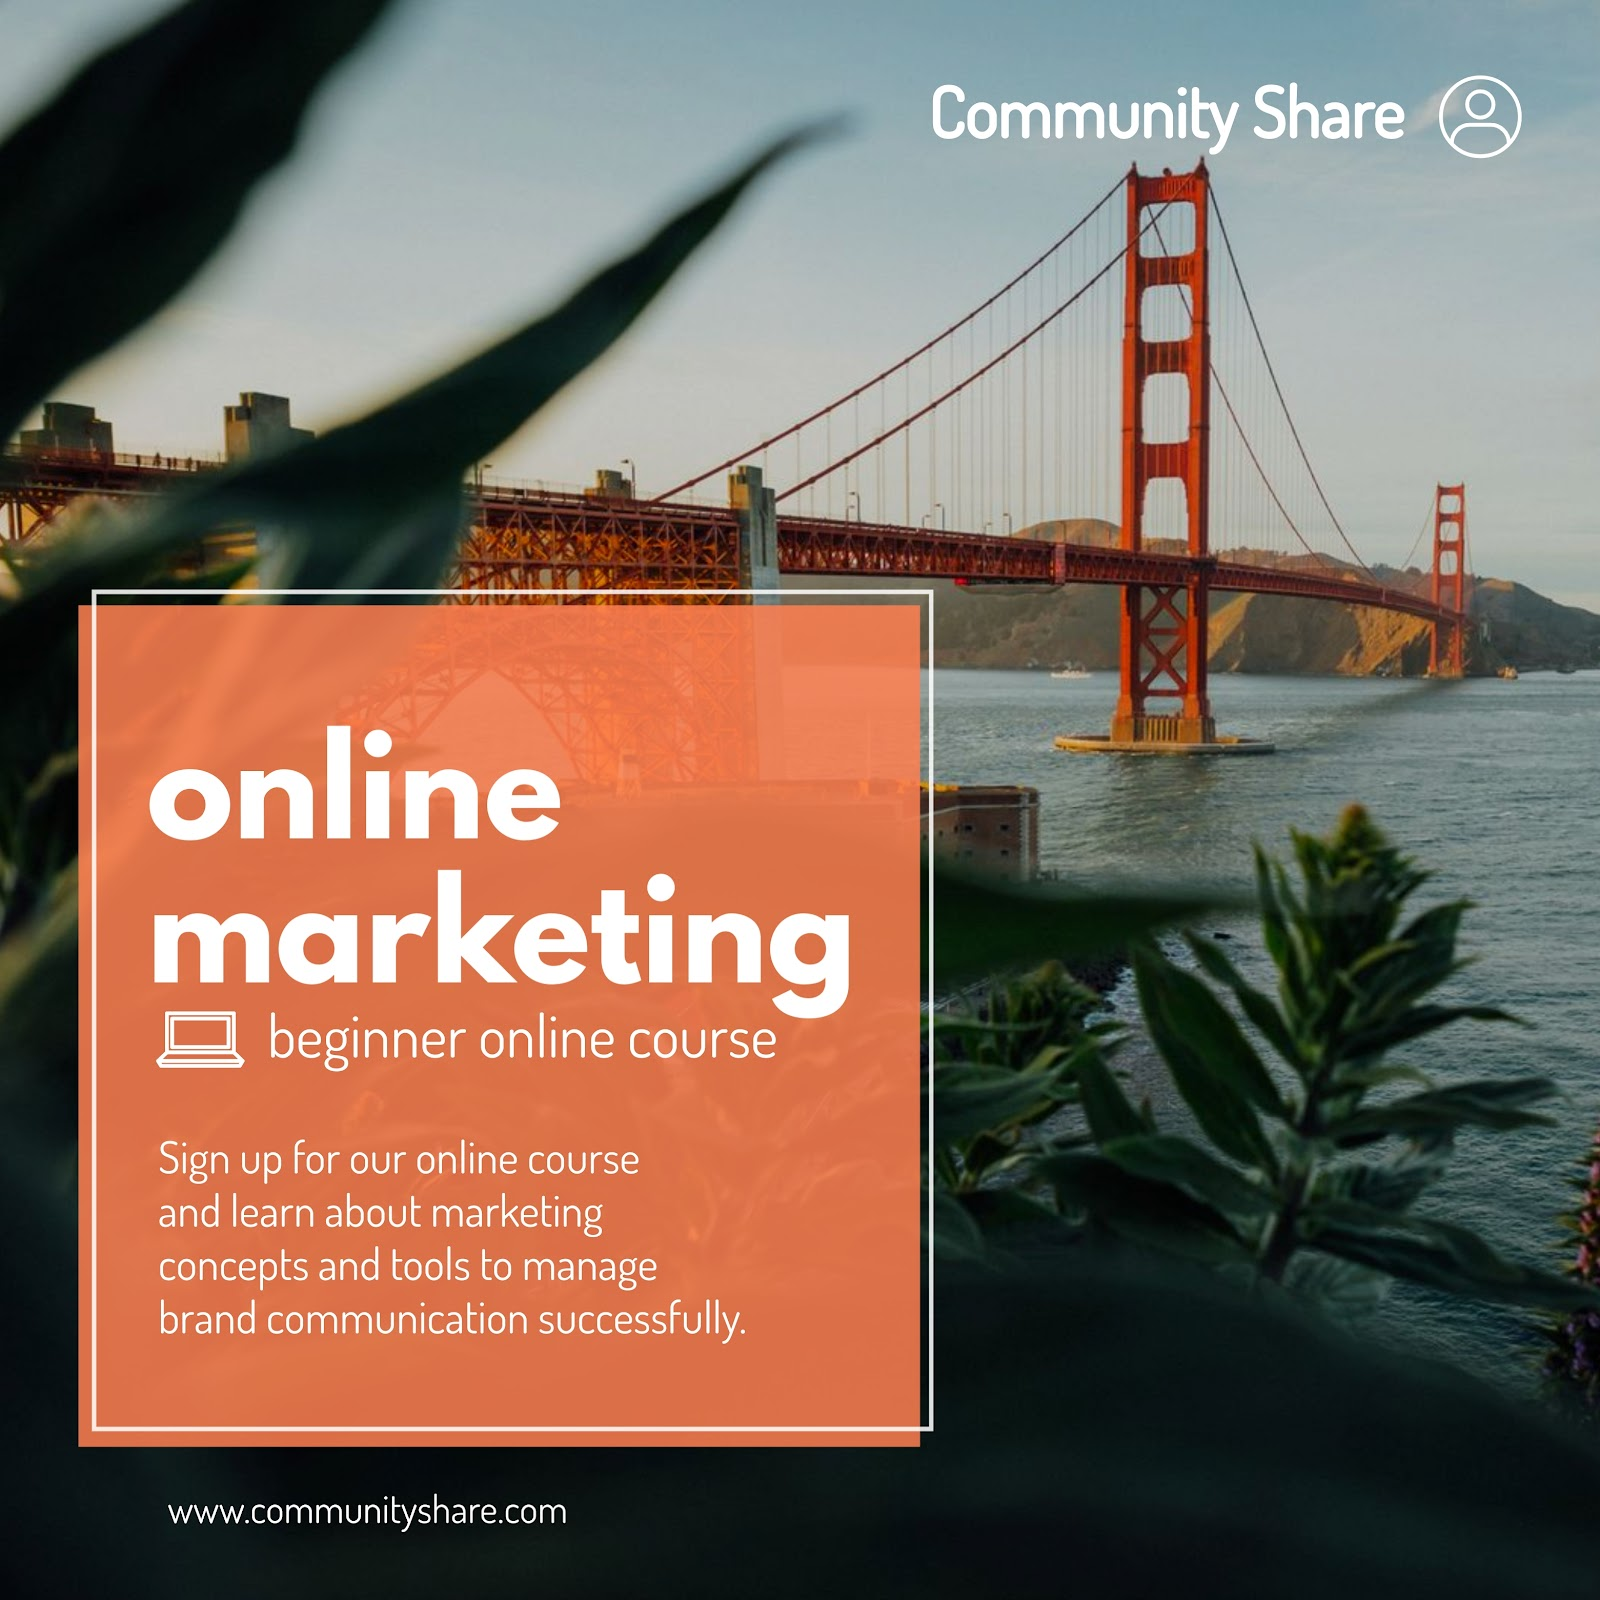 Community Share online marketing image